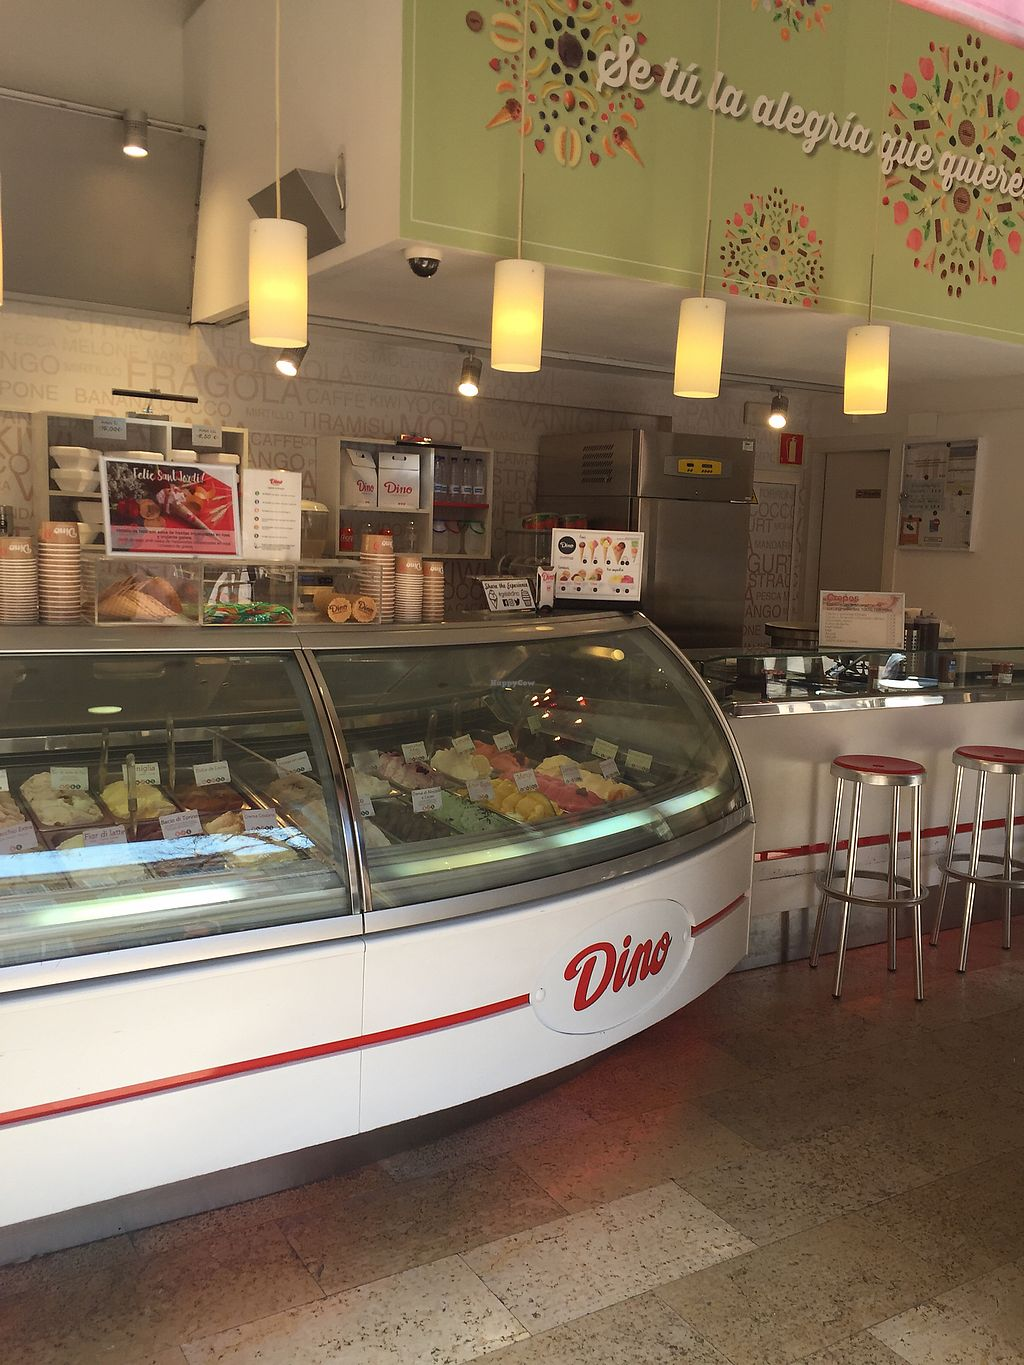 "Photo of Gelateria Italiana  by <a href=""/members/profile/Jameskille"">Jameskille</a> <br/>Inside  <br/> April 20, 2018  - <a href='/contact/abuse/image/99001/388539'>Report</a>"